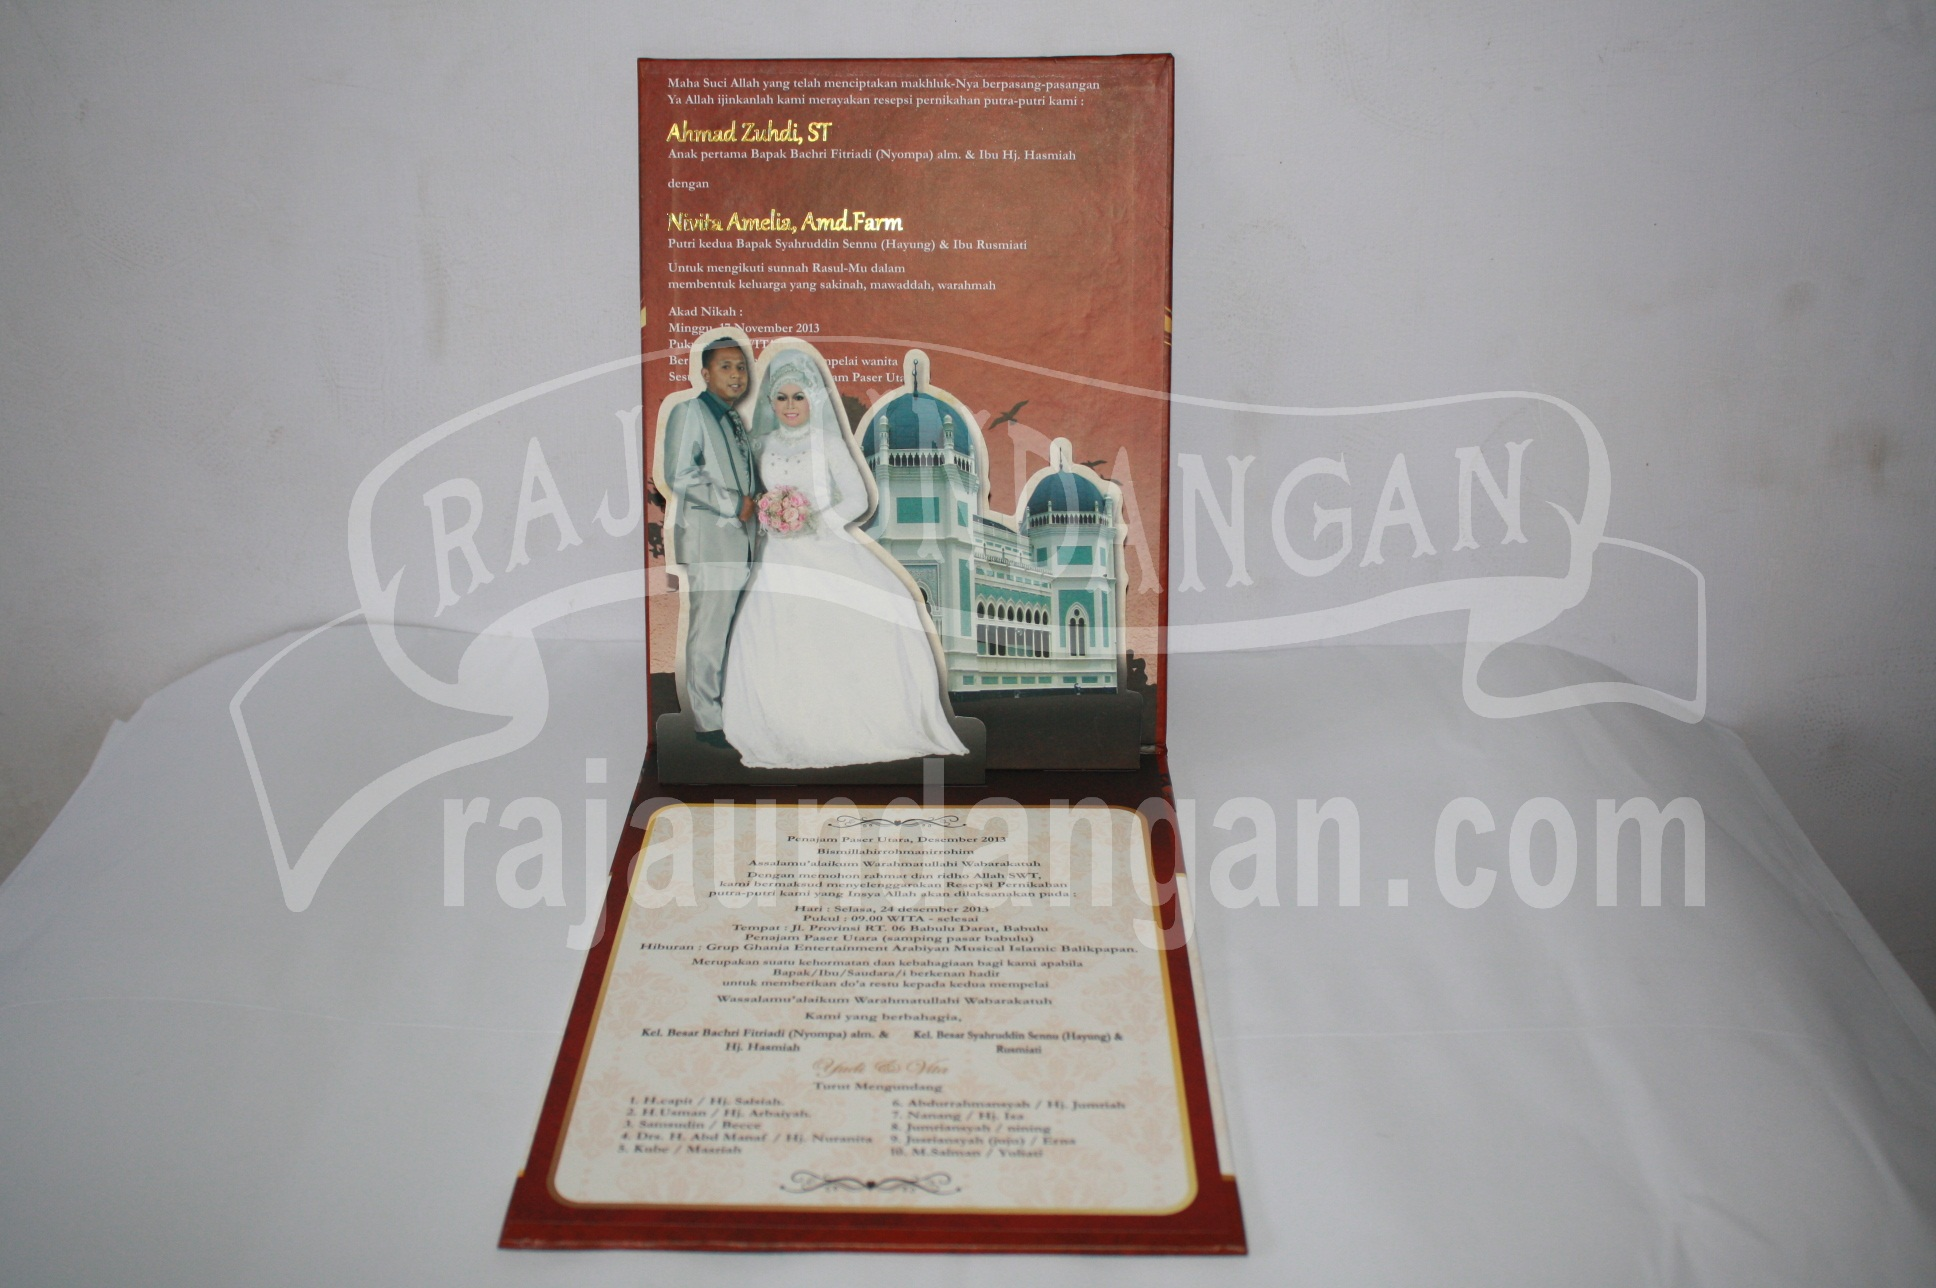 Undangan Pernikahan Hardcover Pop Up Pakai Amplop Yudi dan Vita EDC 44 2 - Percetakan Wedding Invitations Unik dan Simple di Simomulyo